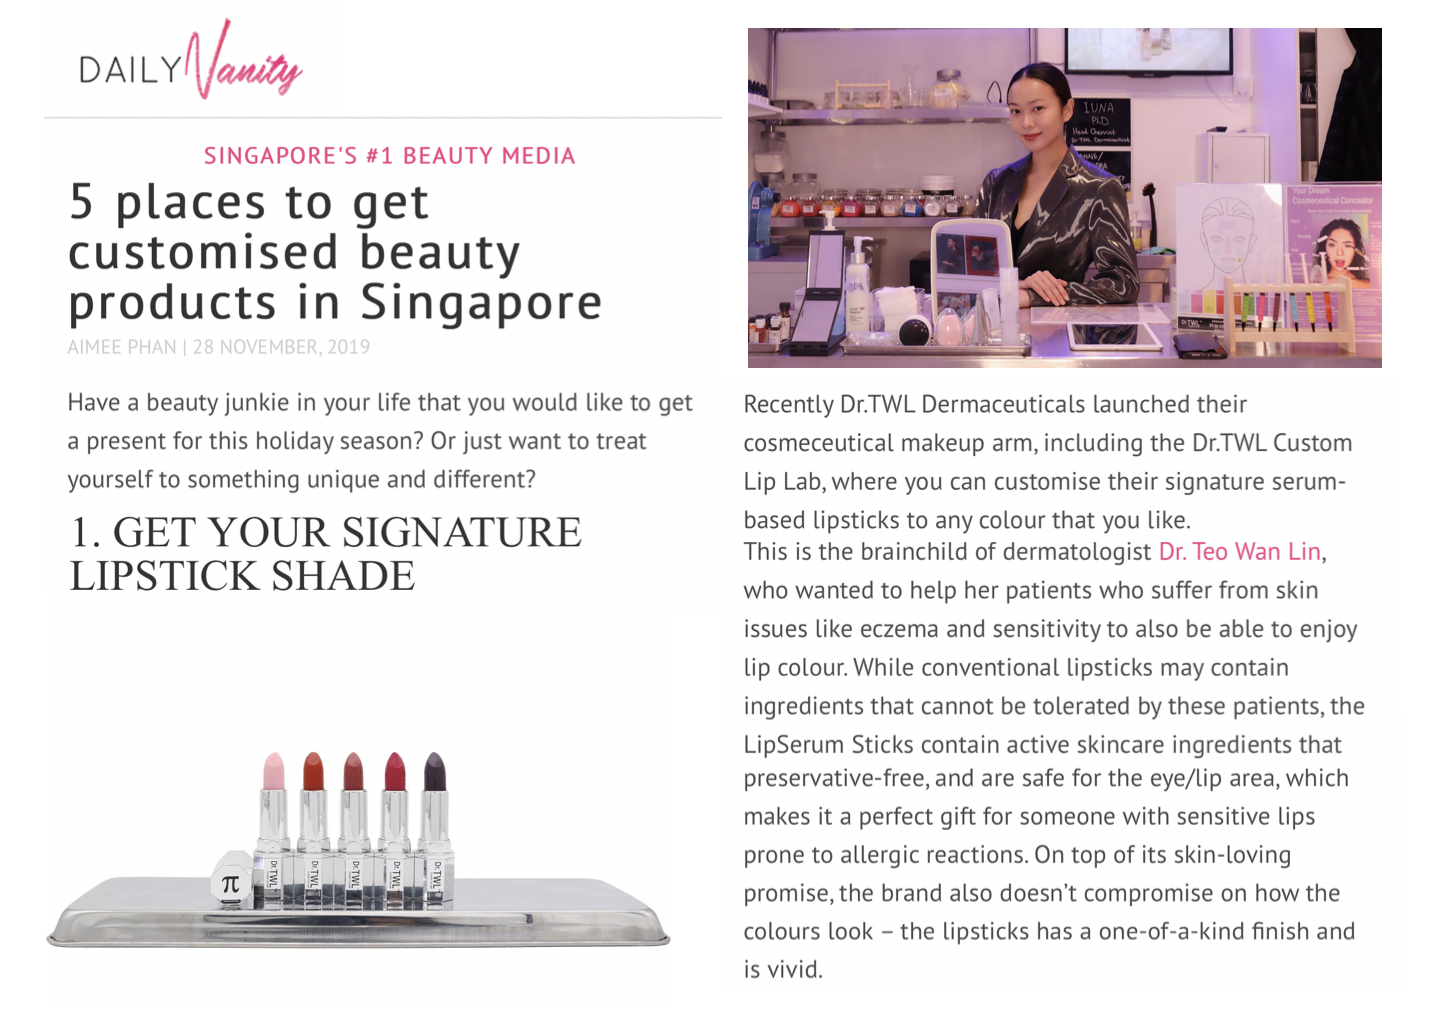 Daily Vanity - Customized Lipstick with Dr.TWL Dermaceuticals Singapore Dermatologist